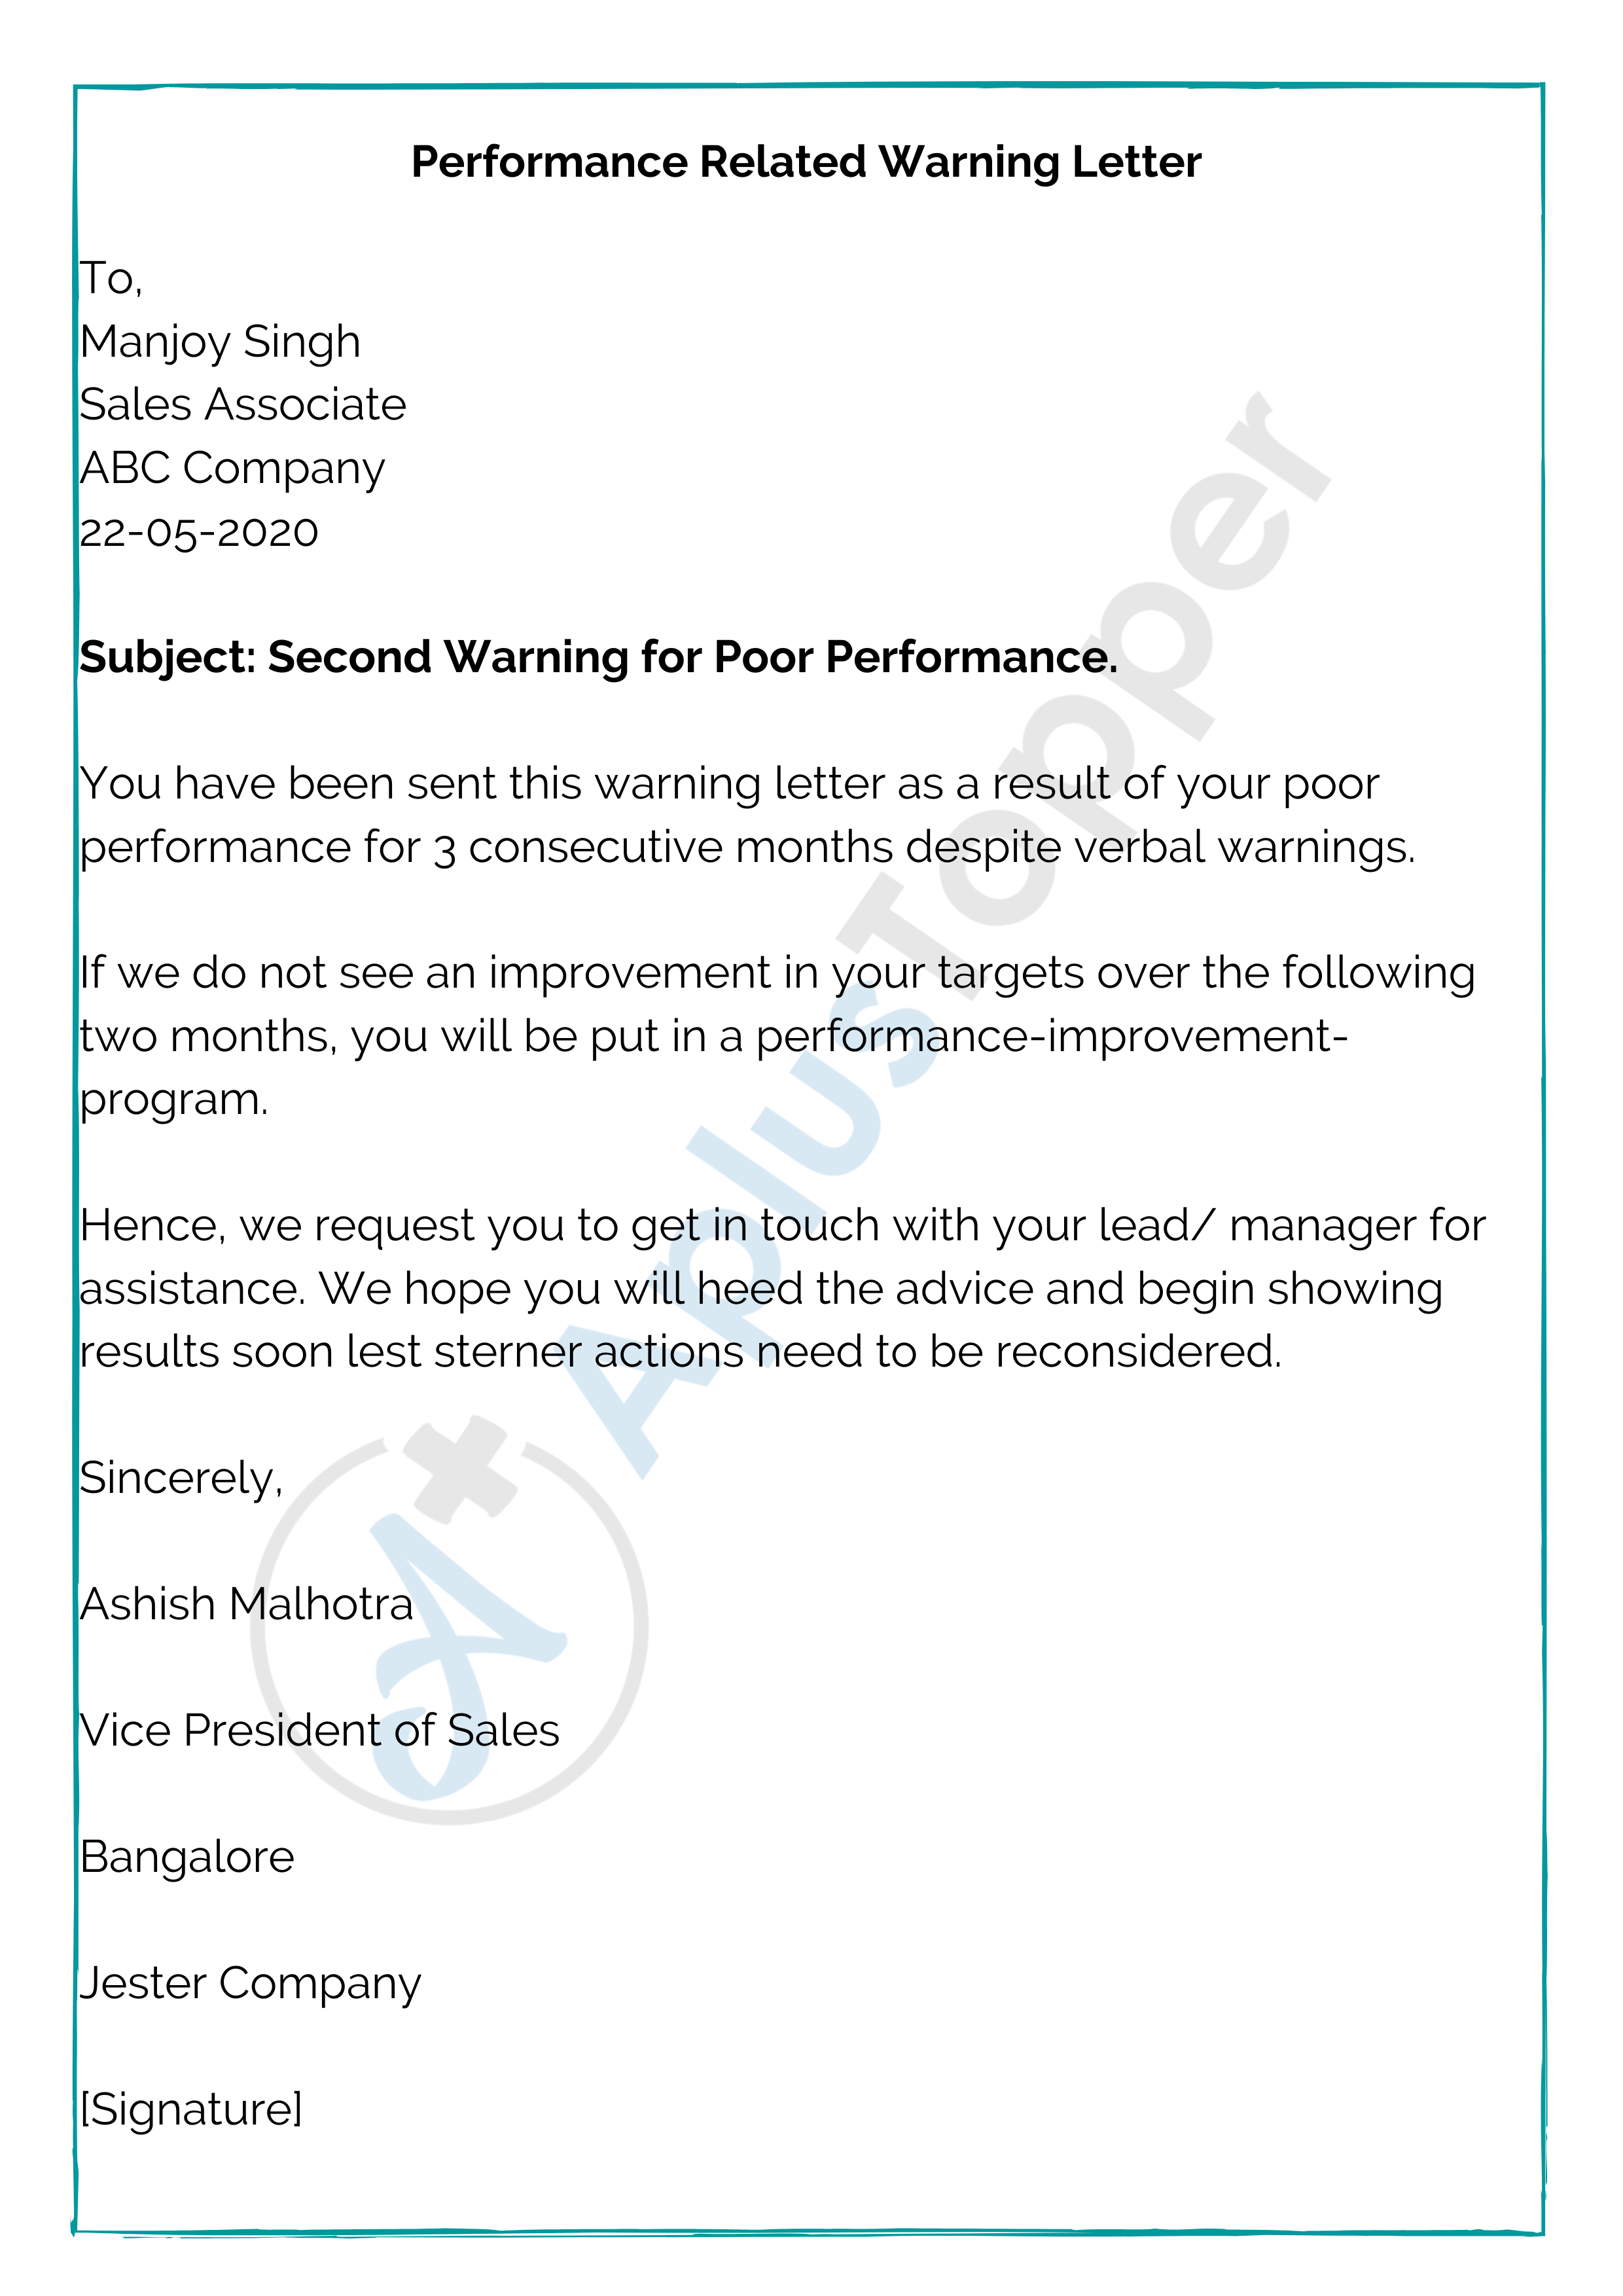 Performance Related Warning Letter